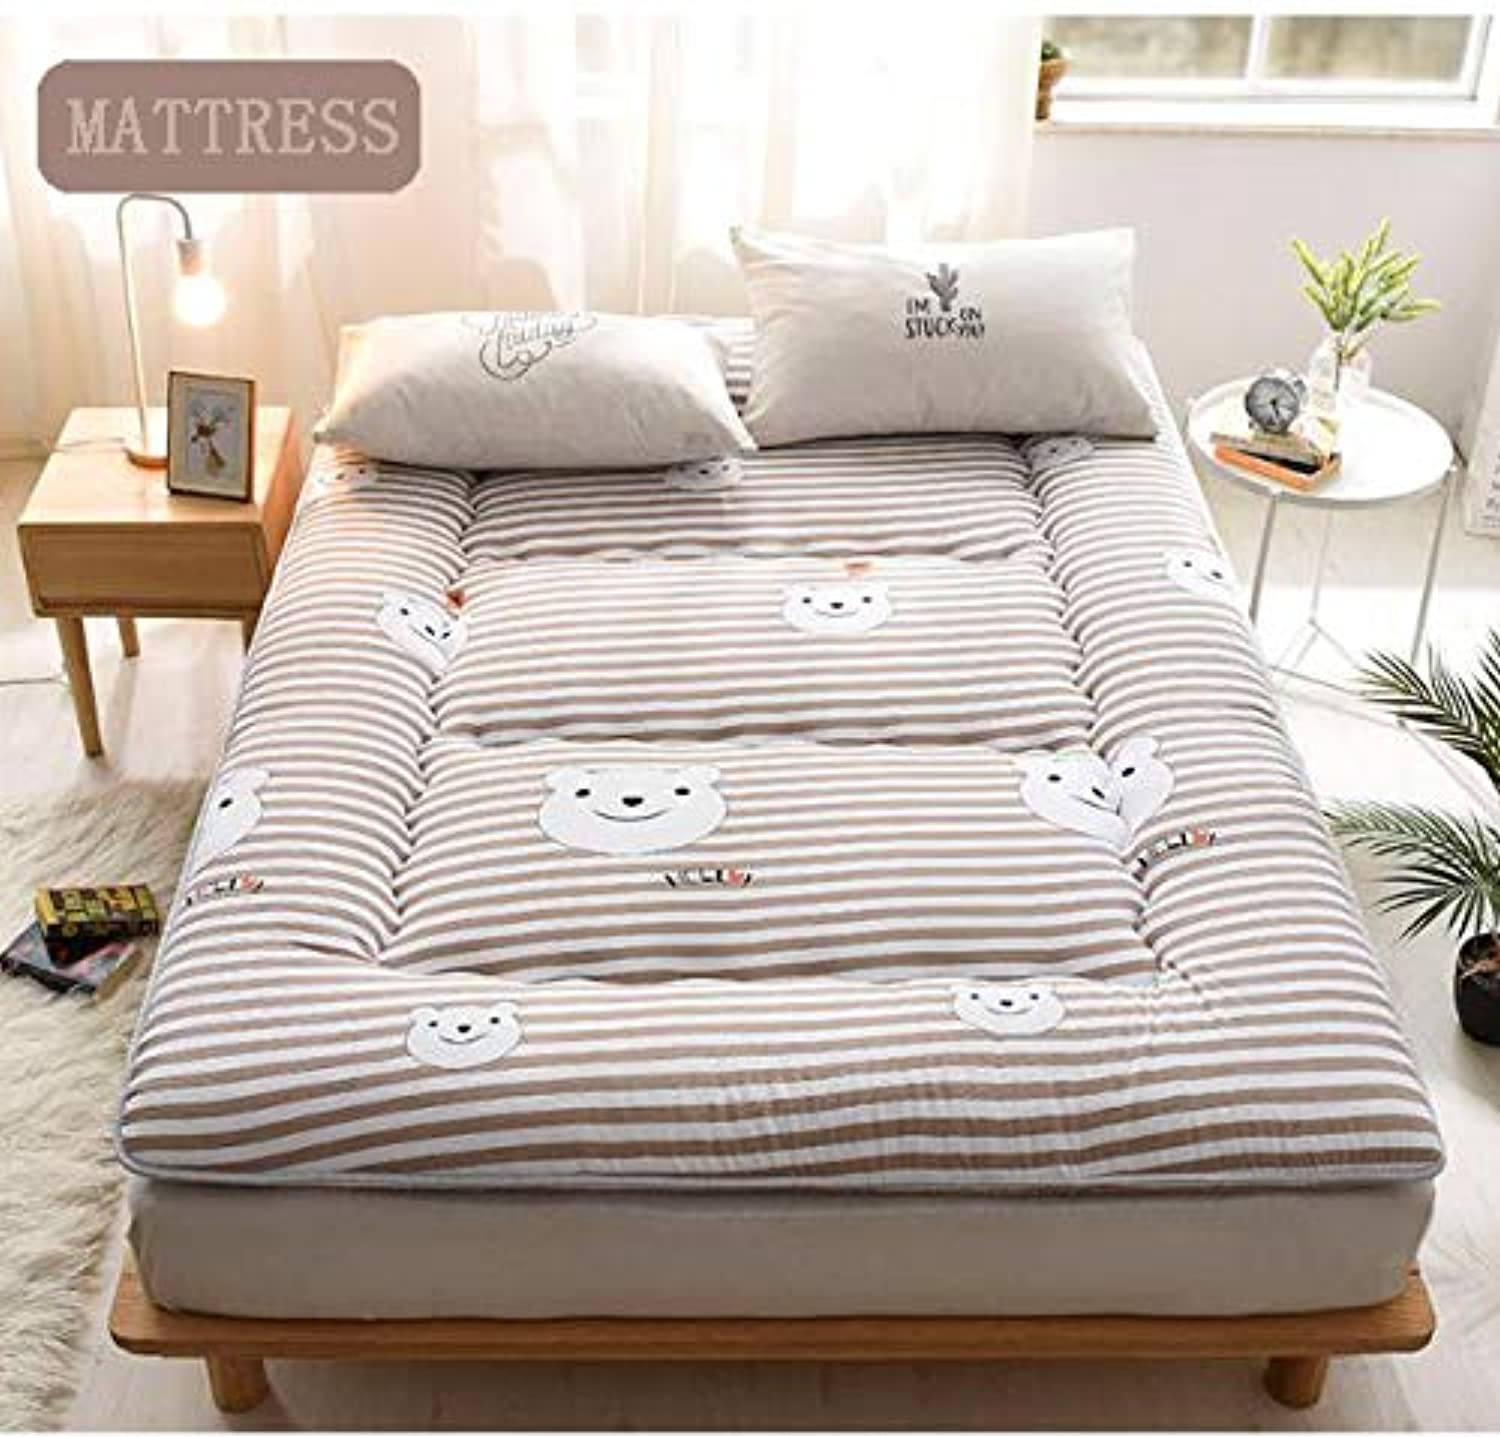 Thick Mattress Topper, Polyester Tatami Floor mat Sleeping, Quilted Fitted Premium Mattress pad-Hypoallergenic -Stripe 100x200cm(39x79inch)